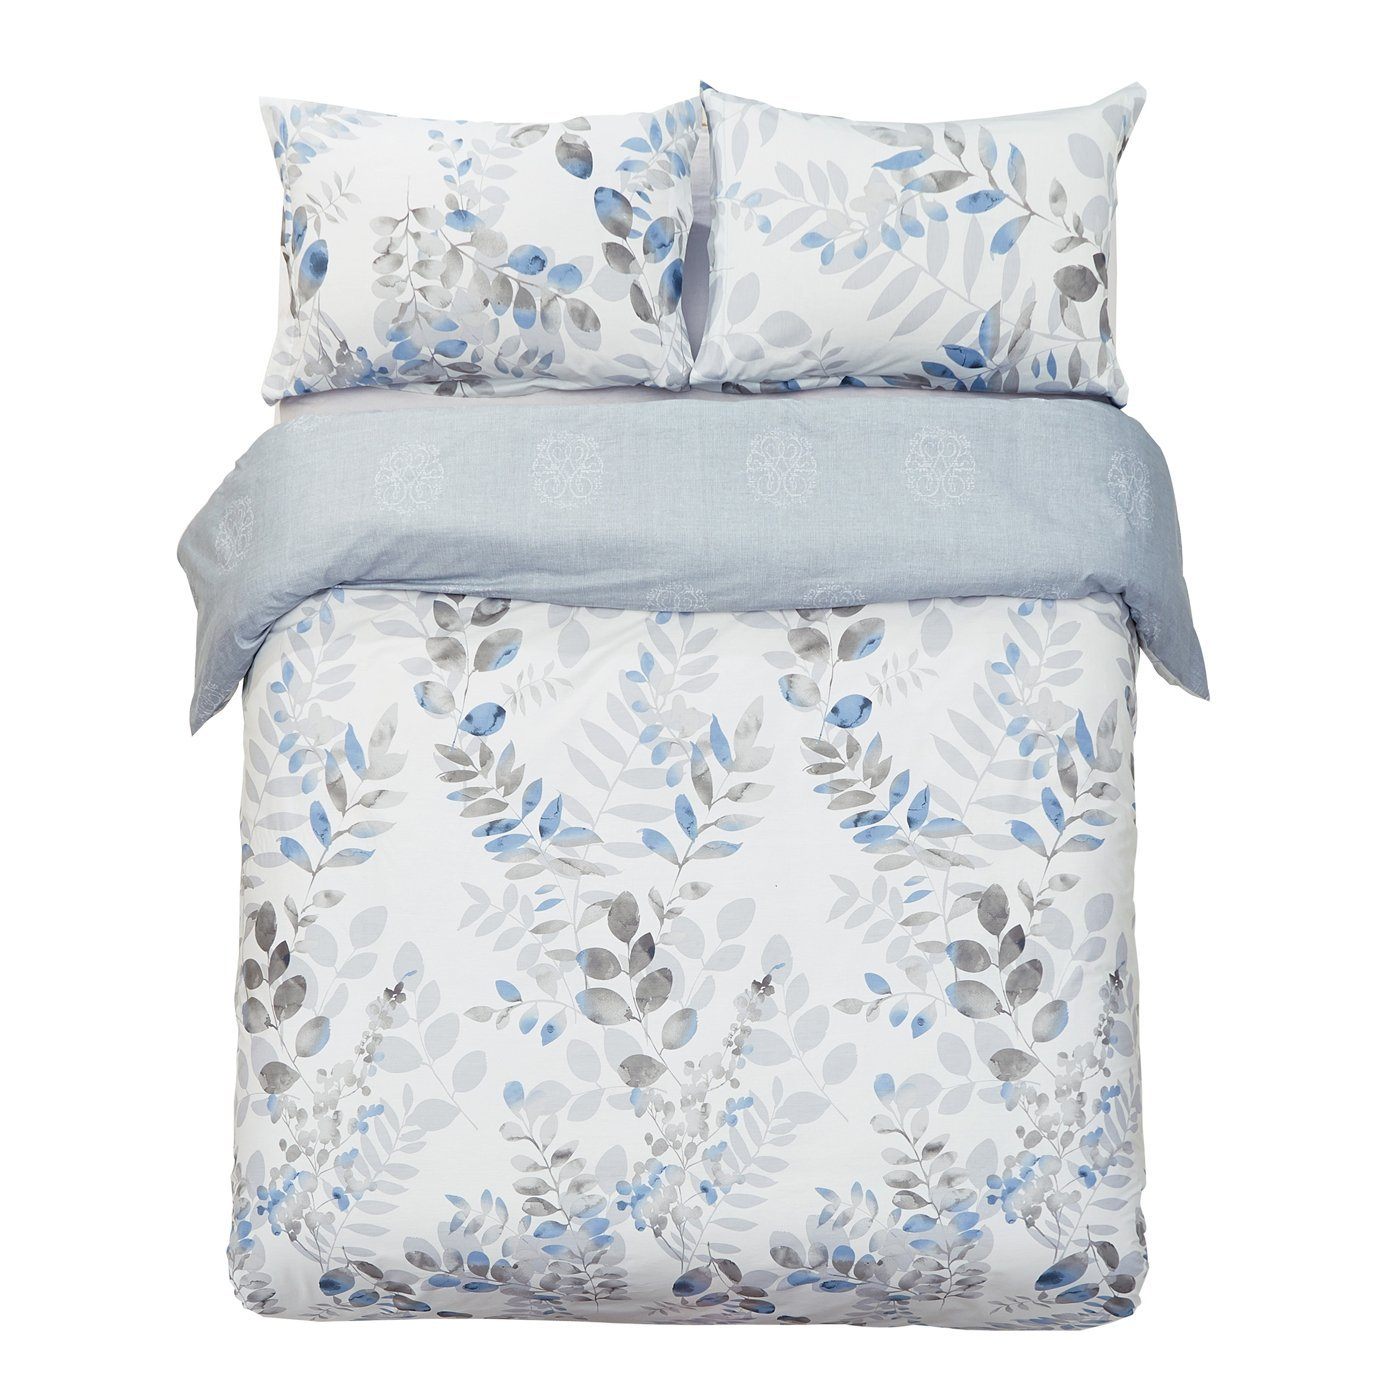 amazoncom word of dream tc  cotton floral print duvet cover set pc leaves pattern twin home  kitchen. amazoncom word of dream tc  cotton floral print duvet